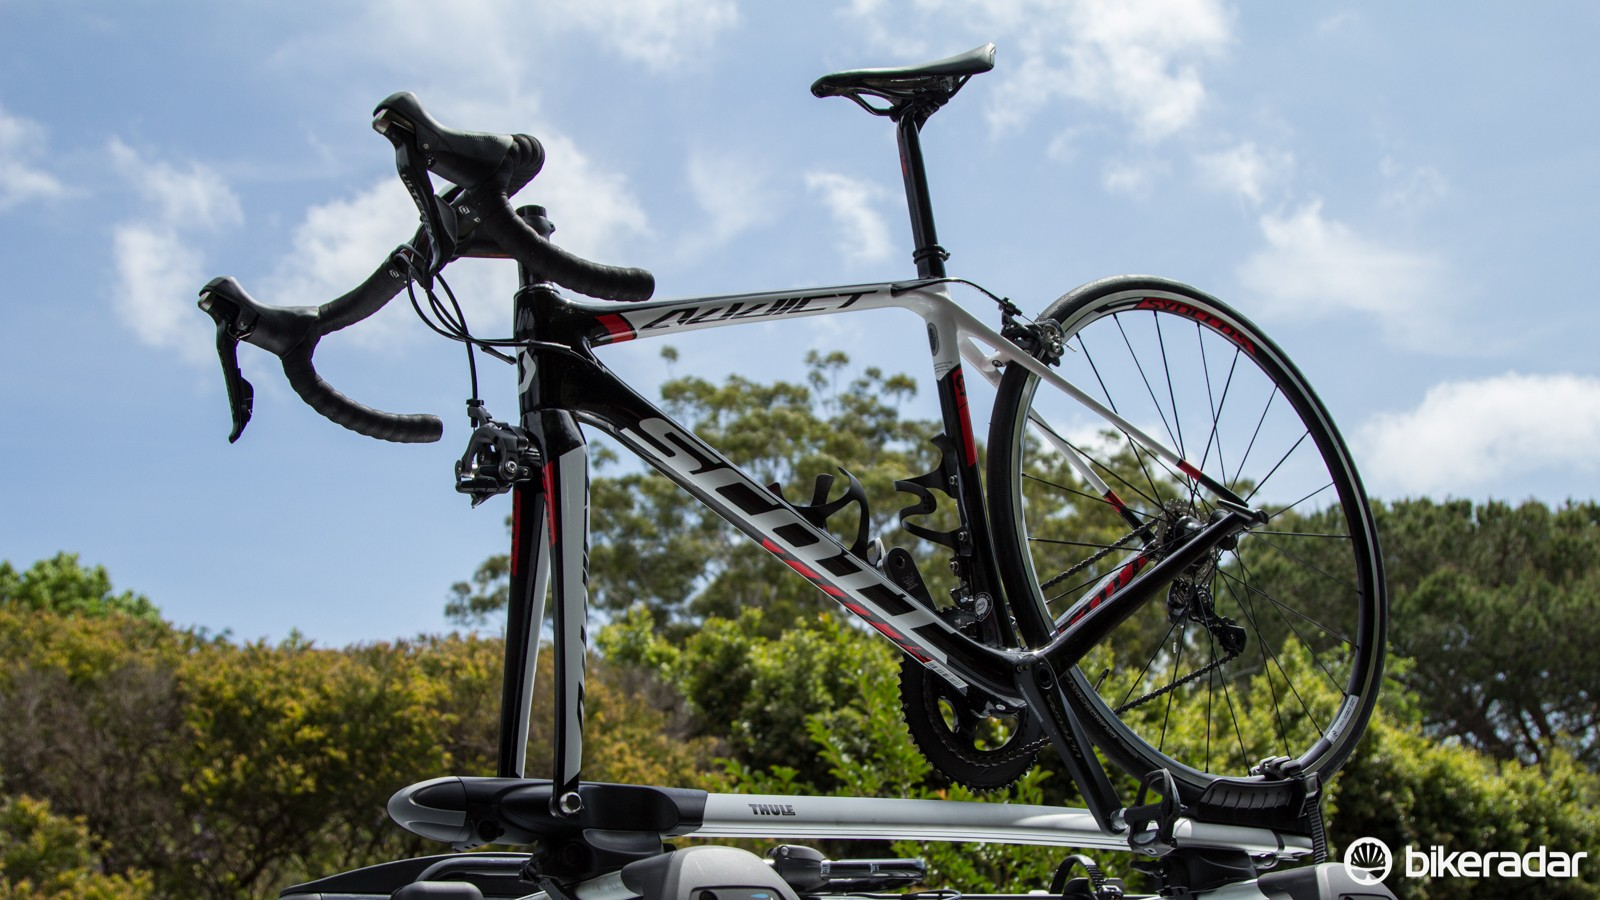 The Thule Sprint 528 bike carrier is arguably the ultimate open-dropout bike carrier